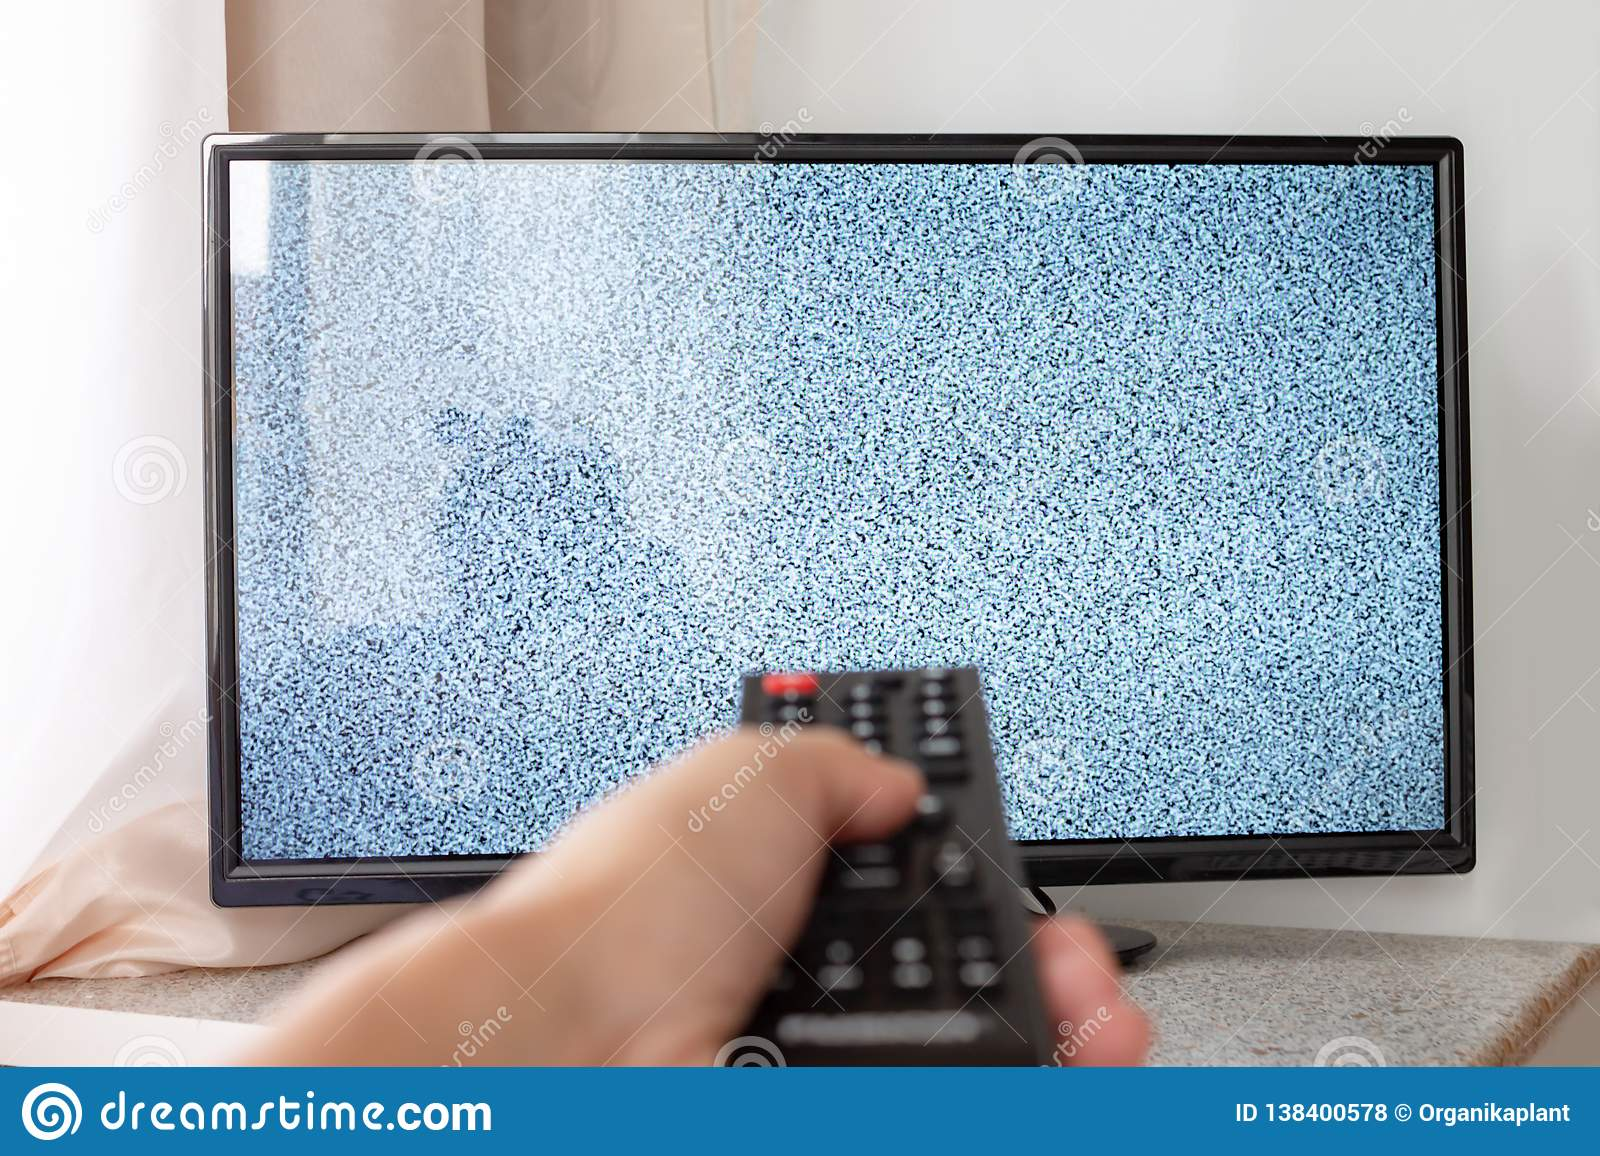 Hand with TV remote control in front of the screen with white noise on it - tuning the television channels and connecting problems